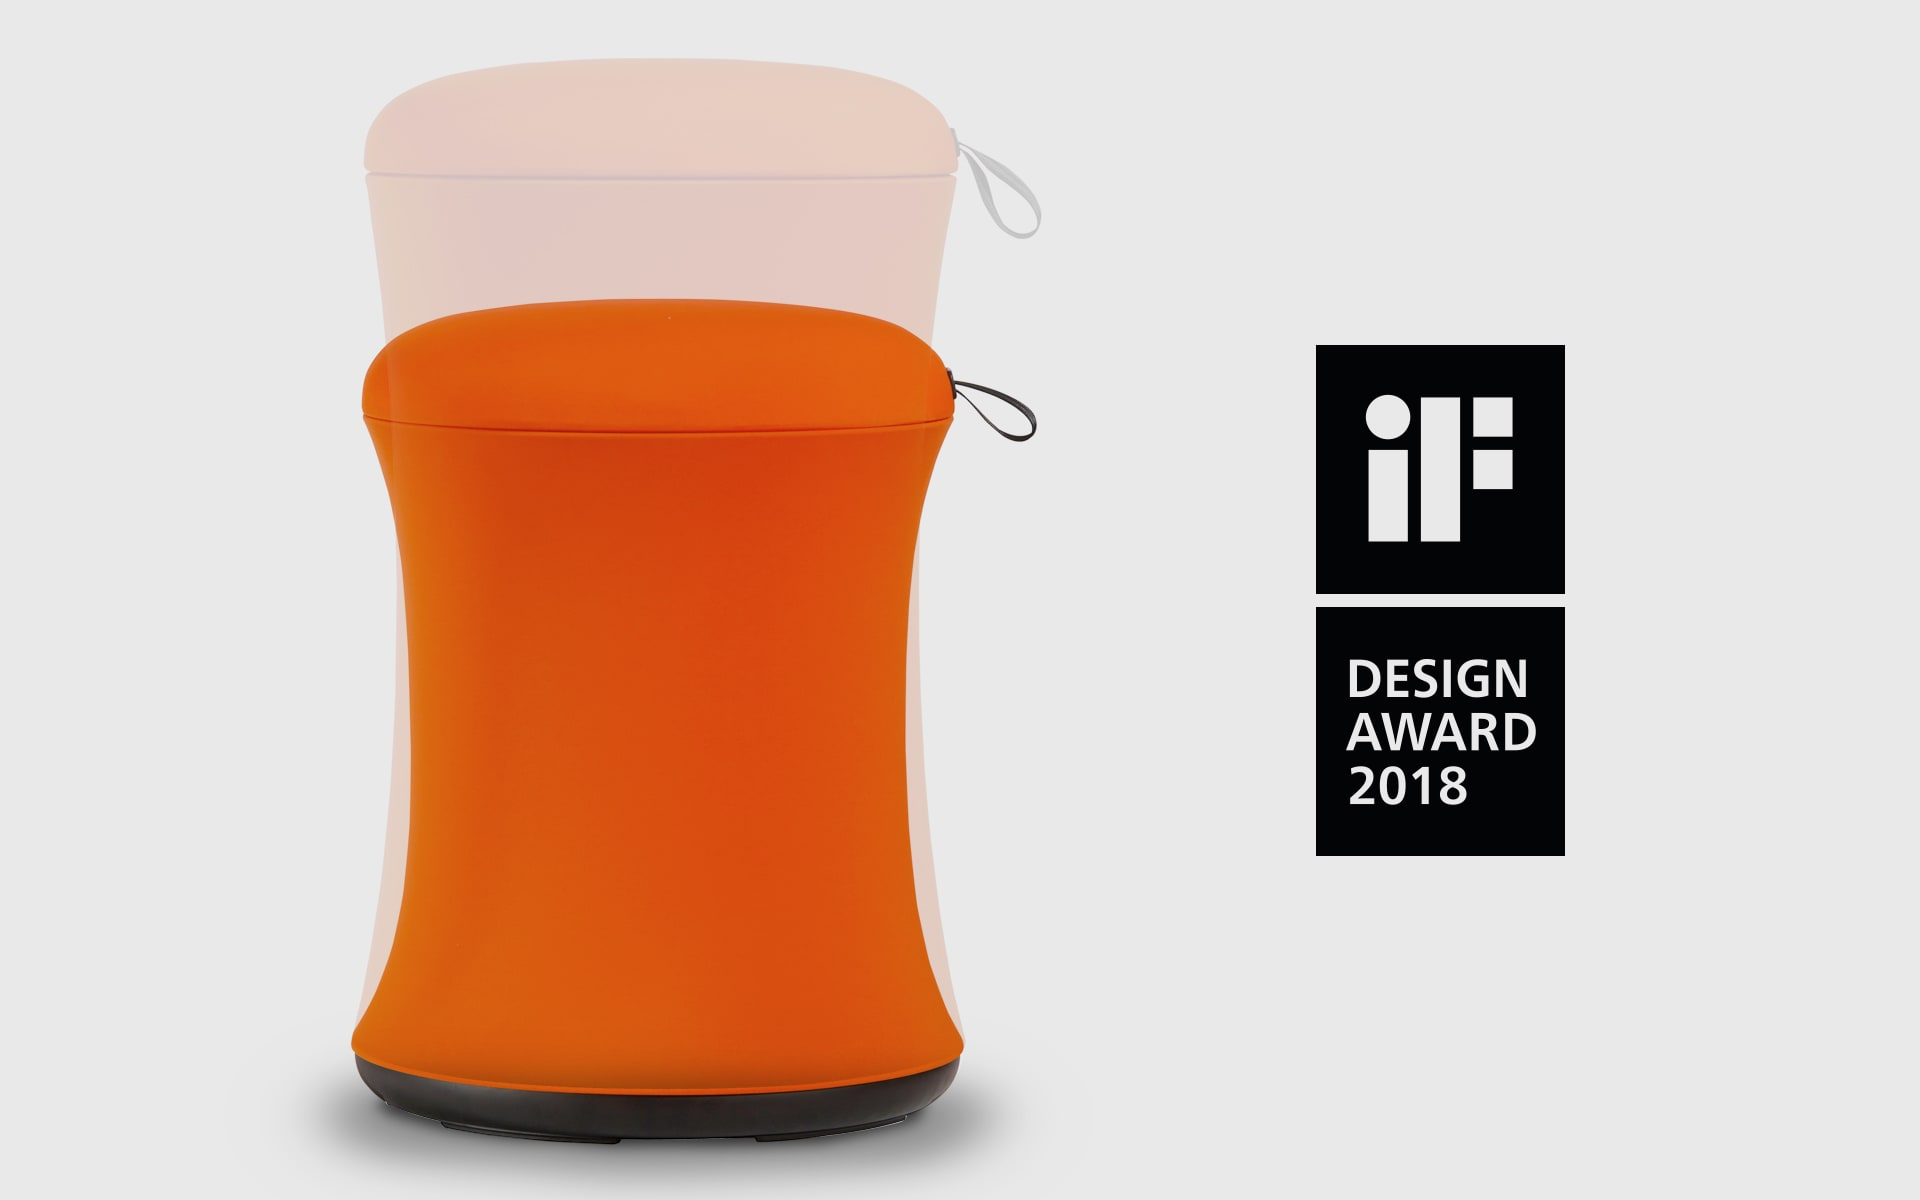 UE Furniture Uebobo stool by ITO Design in orange